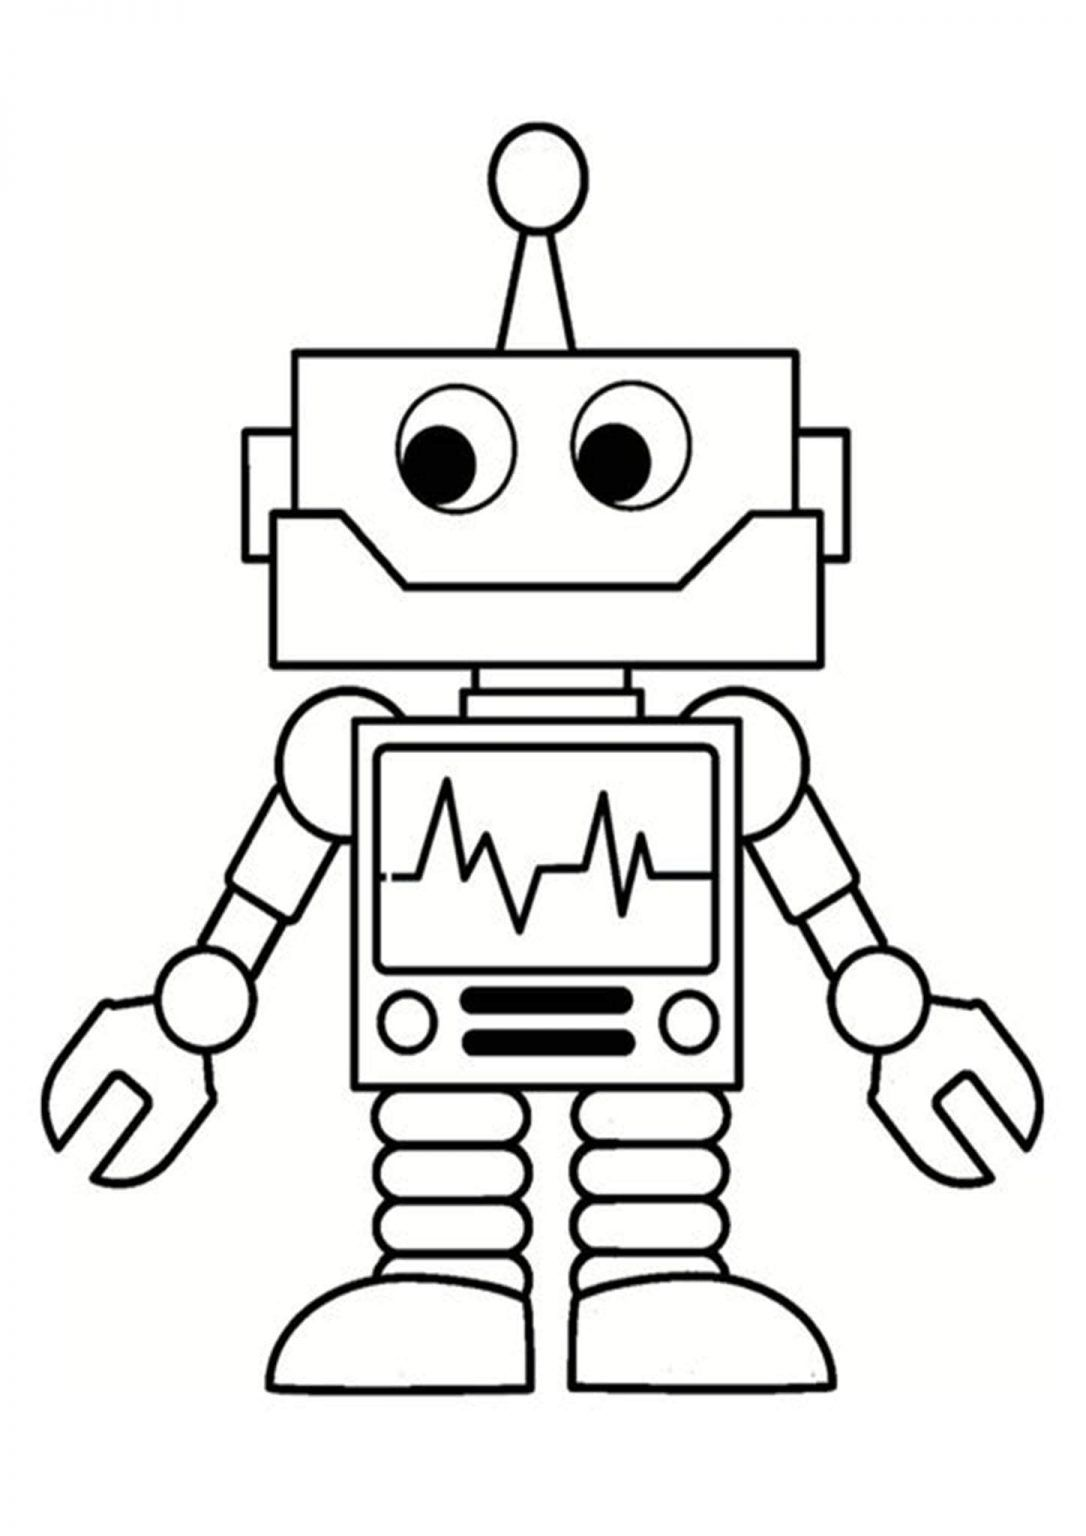 Free Easy To Print Robot Coloring Pages In 2021 Easter Coloring Pages Printable Coloring Pages Spring Coloring Pages